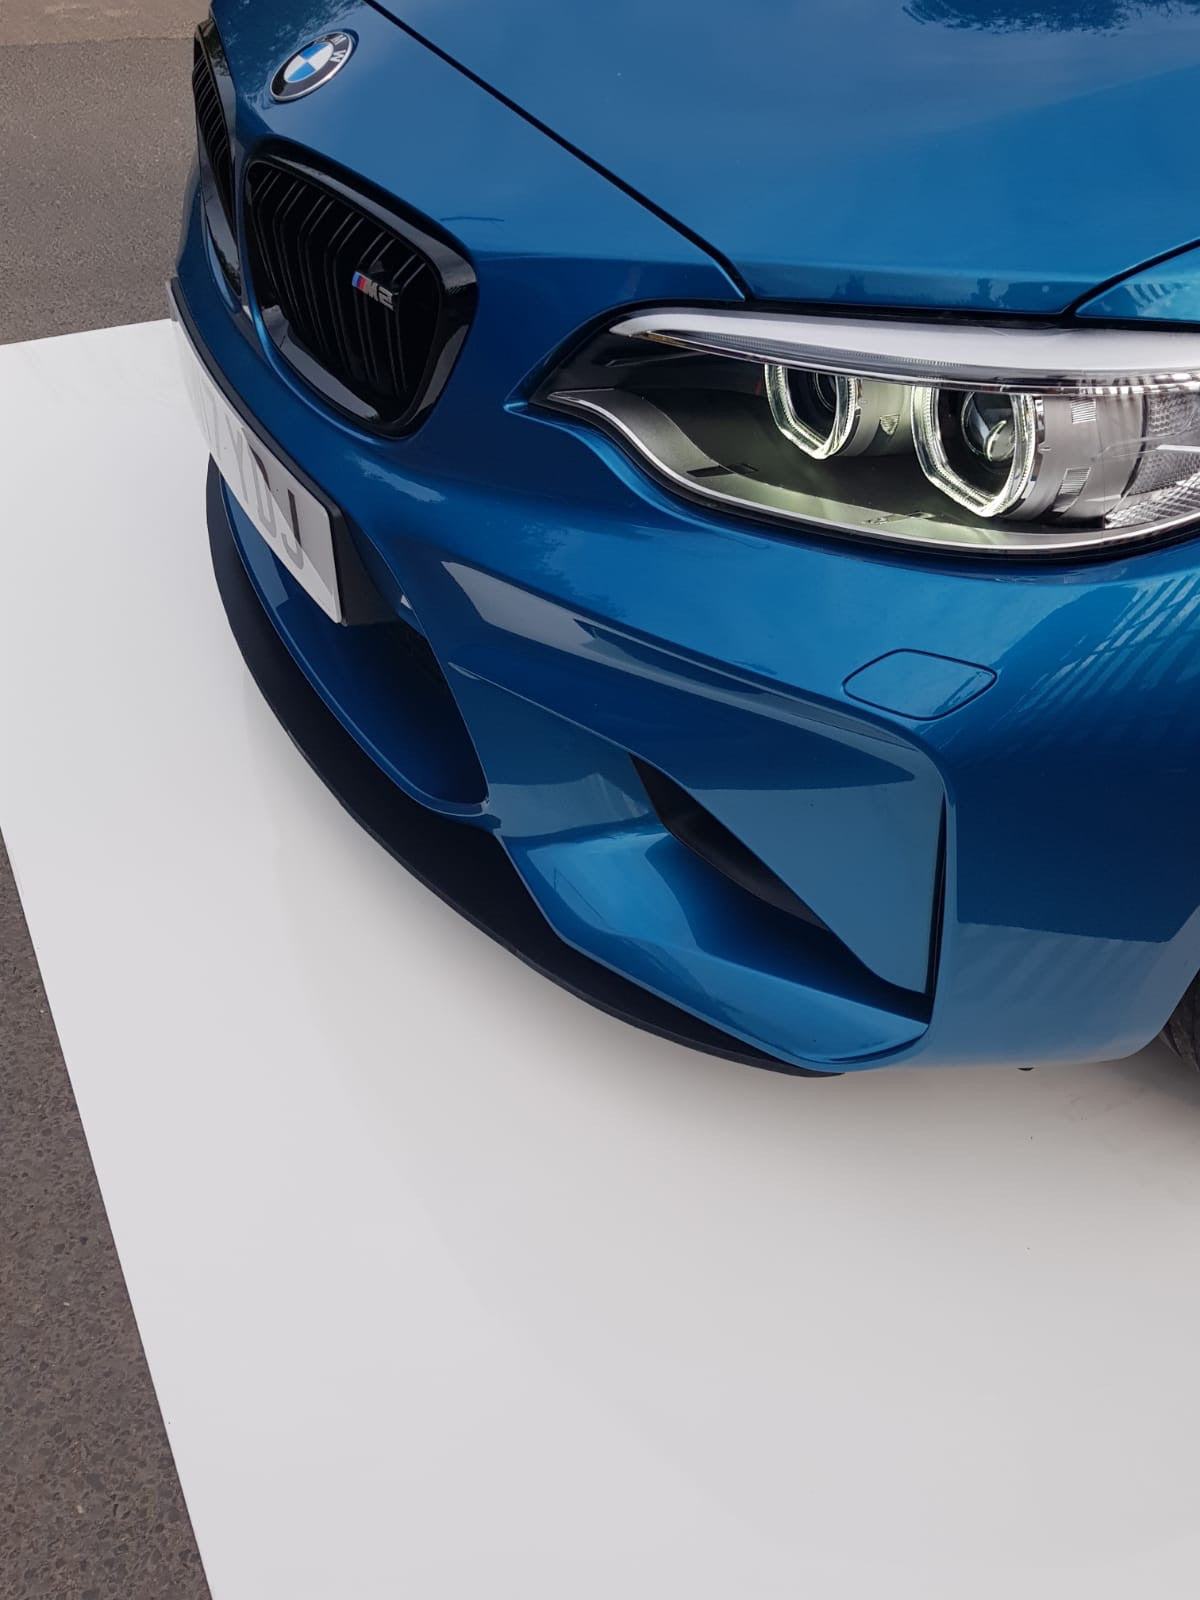 BMW M2 and M2C front splitter